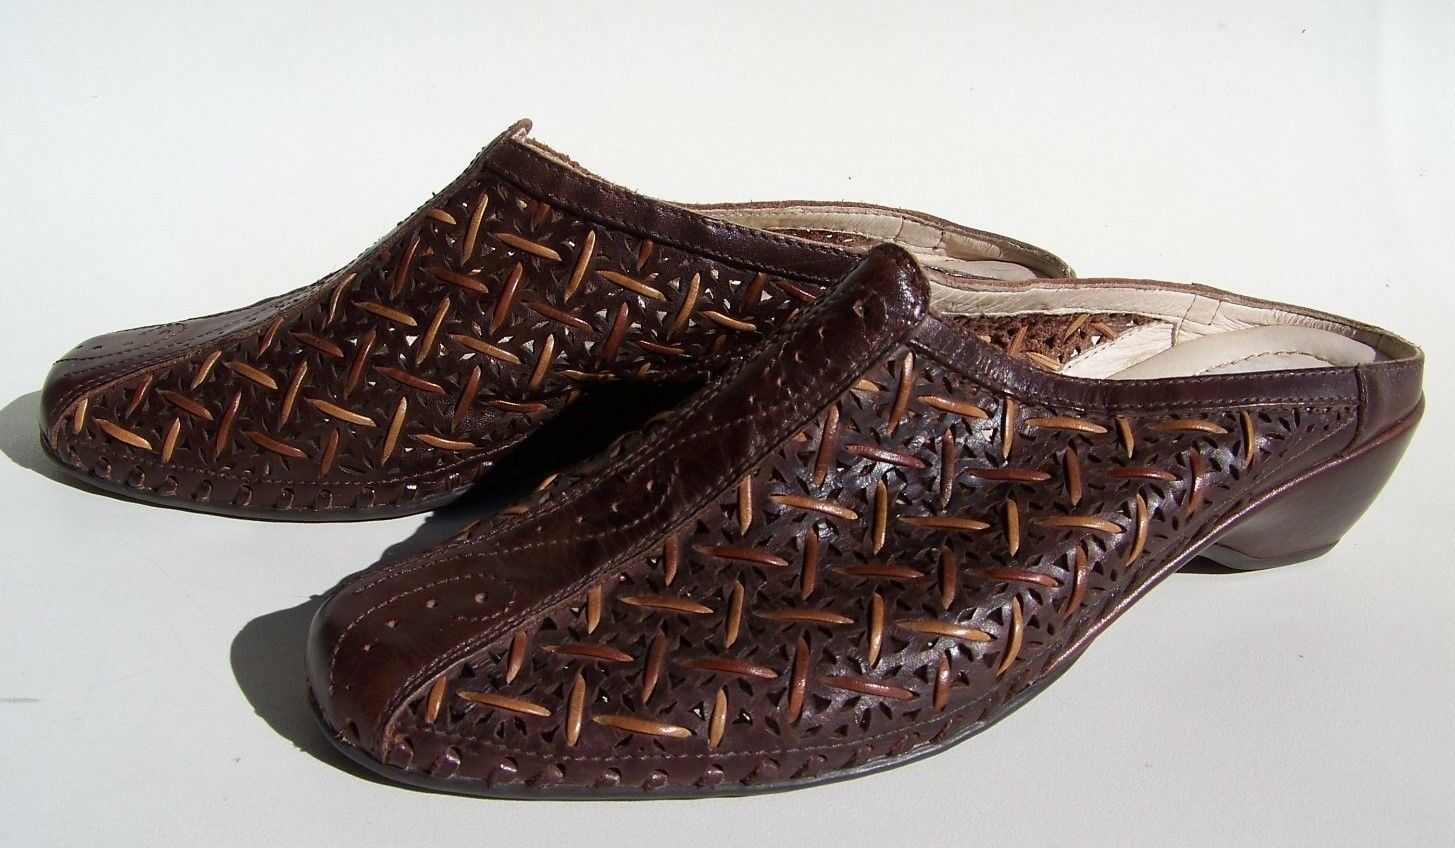 Pikolinos Woven Cut Out Leather Slides Women's 39 (US 8.5) shoes Low Heel Mules